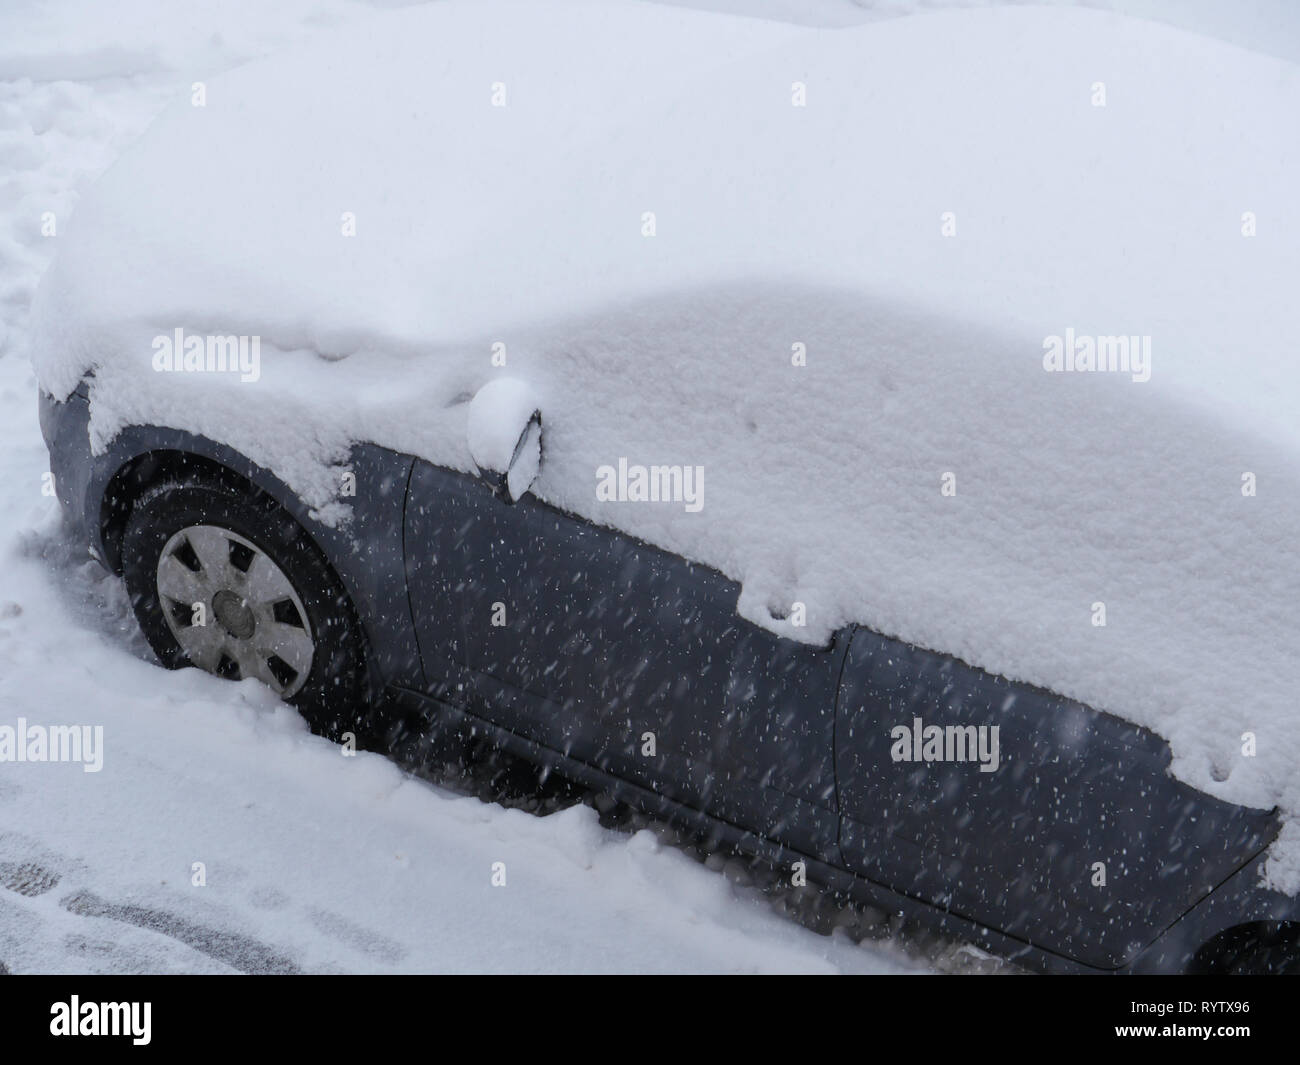 snowfall, passenger car covered with a thick layer of snow - Stock Image